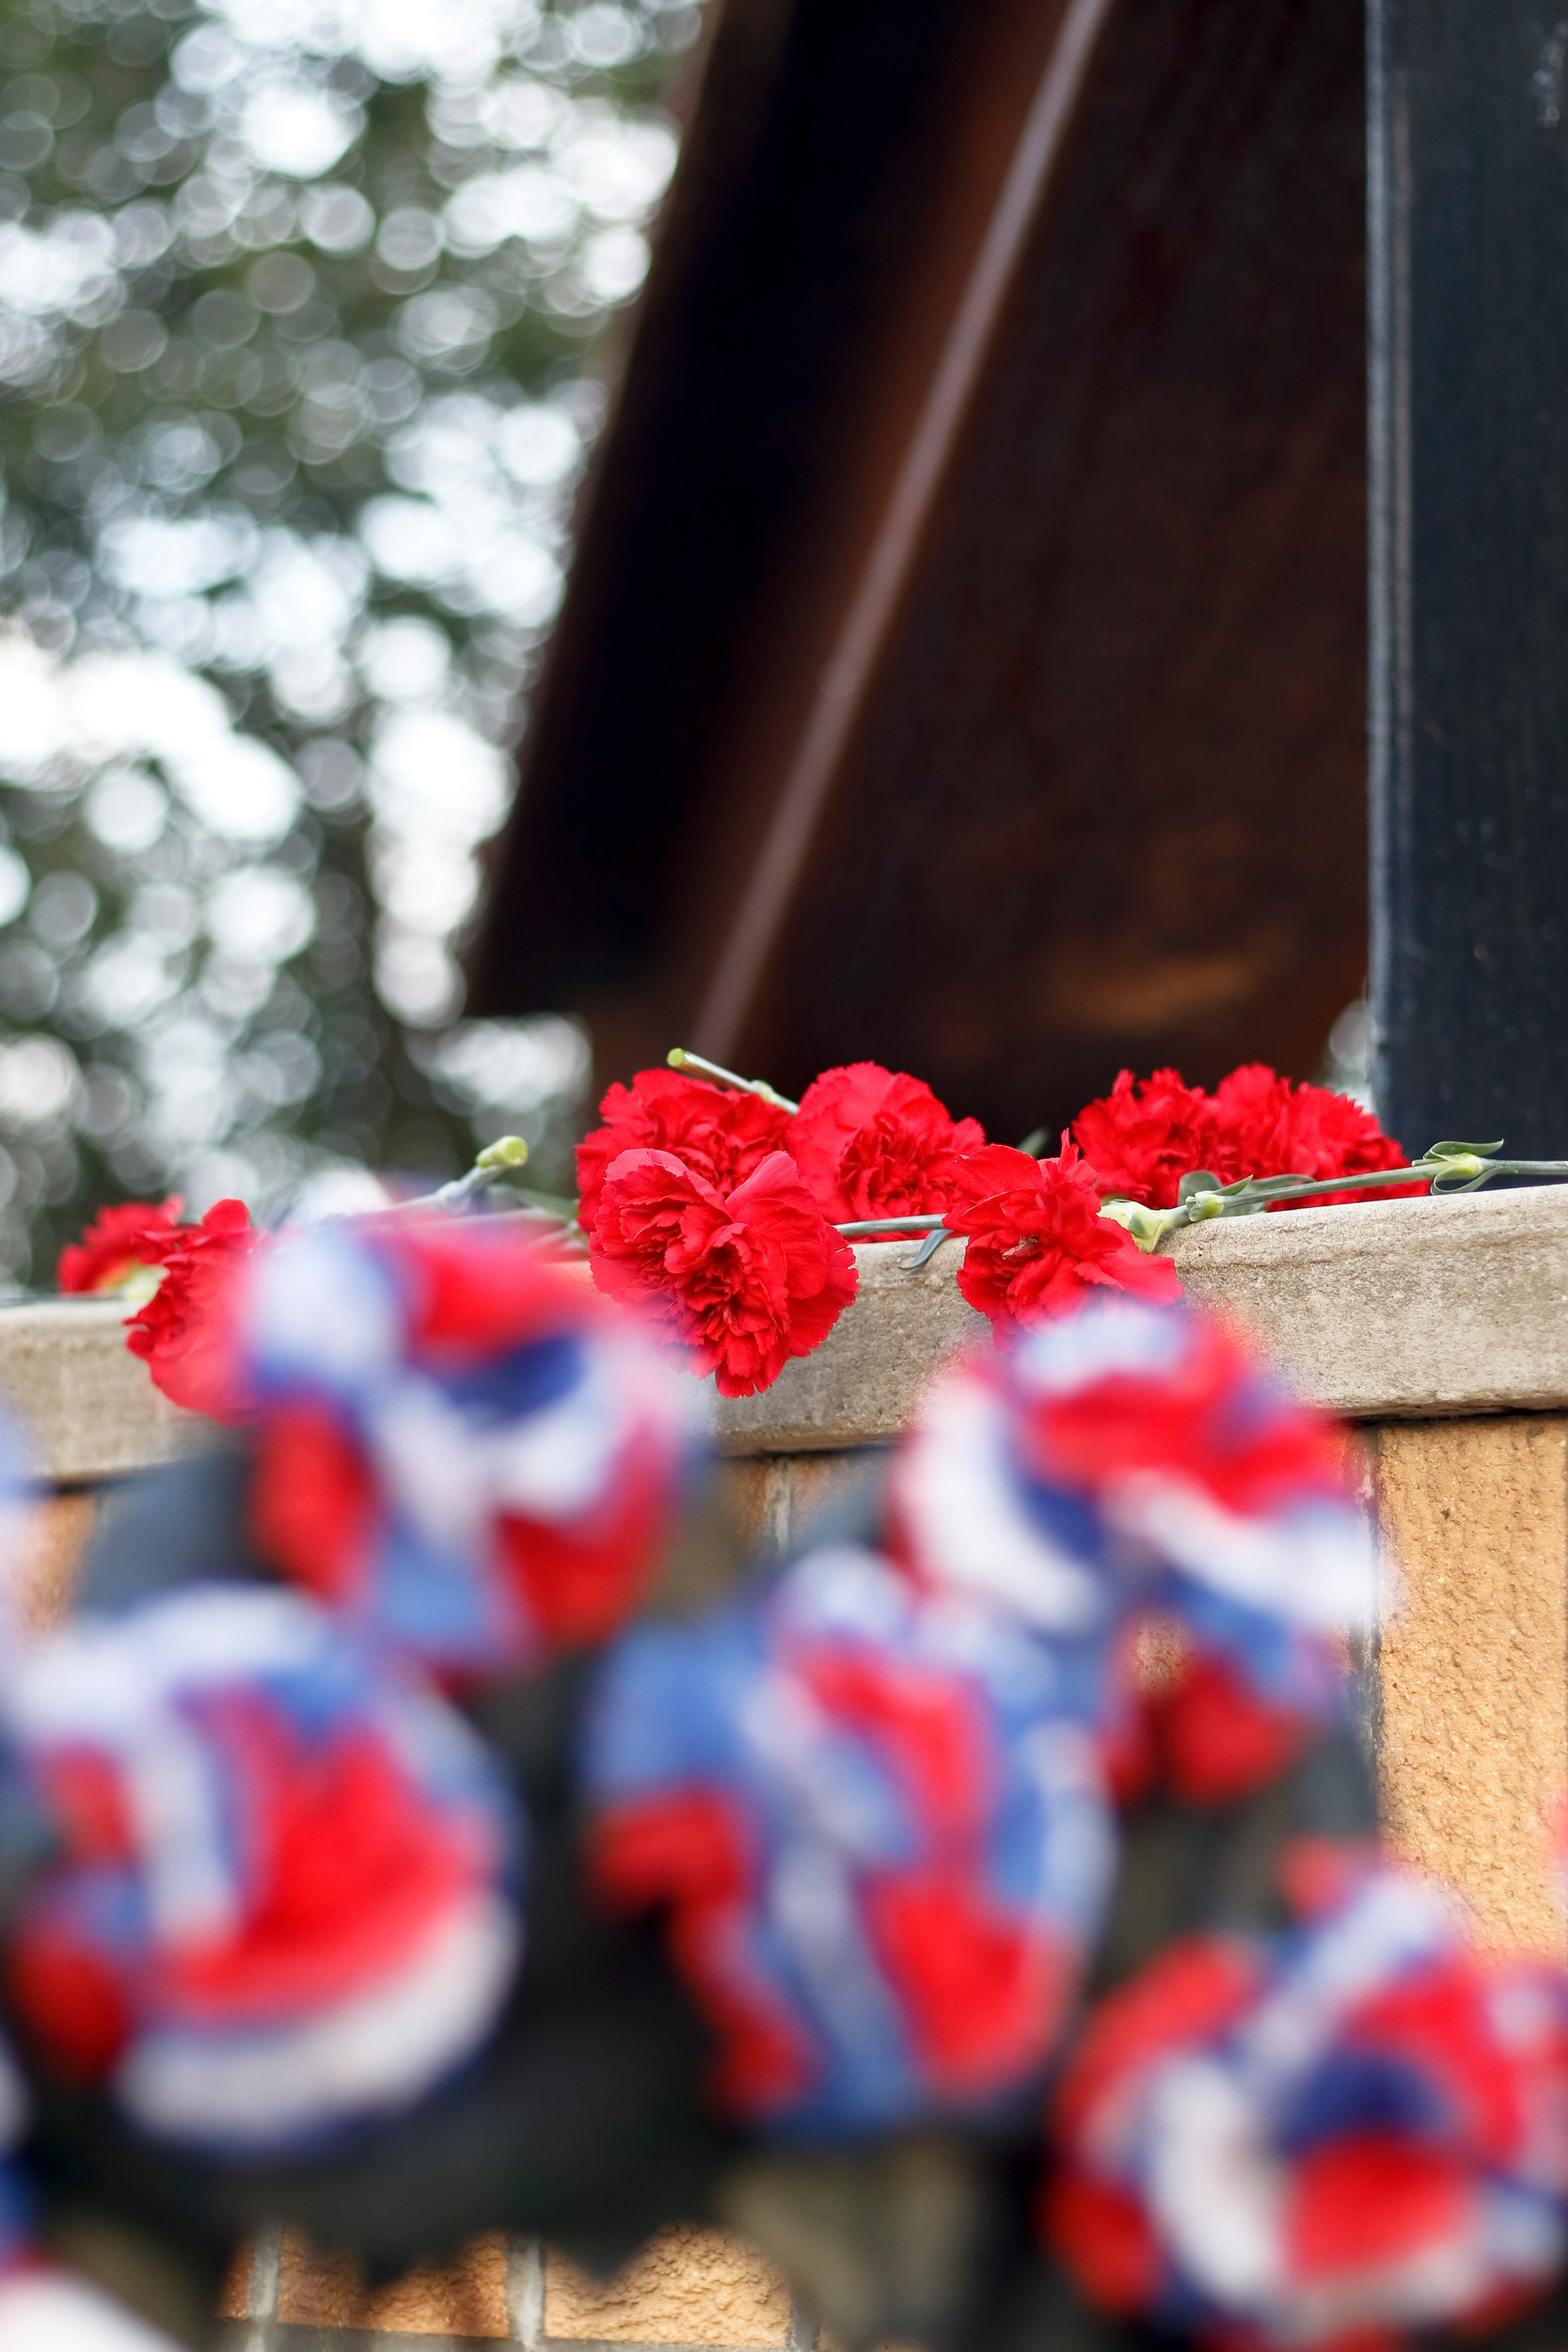 The steel beam from the World Trade Center has been in Valley Stream since 2011. Each year wreaths and flowers are placed on and around the beam during the ceremony at Hendrickson Park.